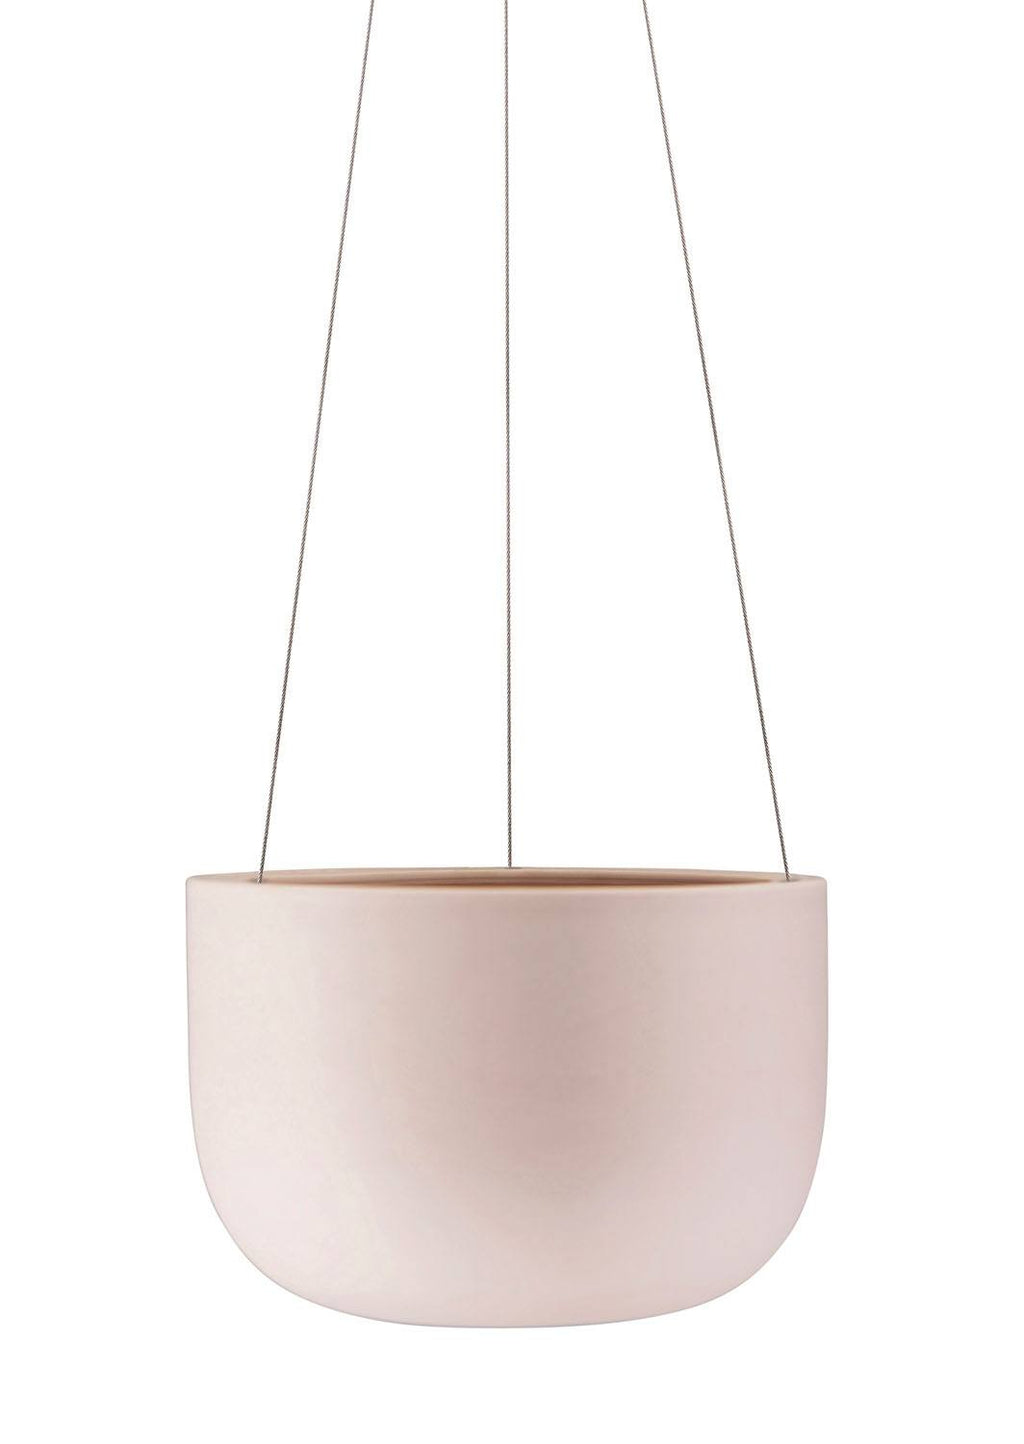 "8"" Angus & Celeste Raw Earth Hanging Planter in Rock Salt Pink"